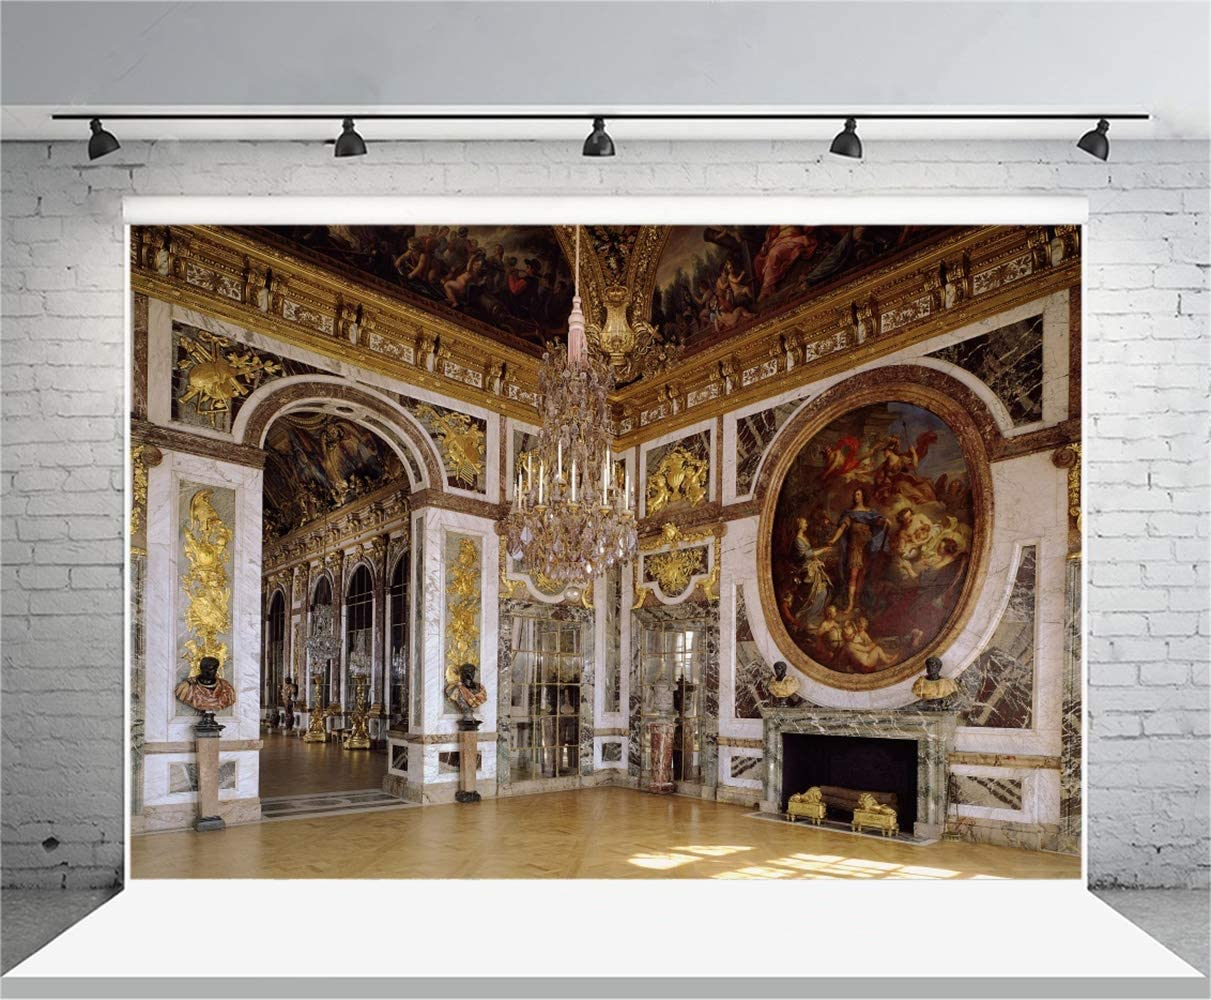 8x6.5ft European Palace of Versailles Interior Polyester Photography Background Luxurious Chandelier Vintage Jesus Mural Fireplace Arch Door Backdrop France Famous Cultural Resort Wedding Shoot